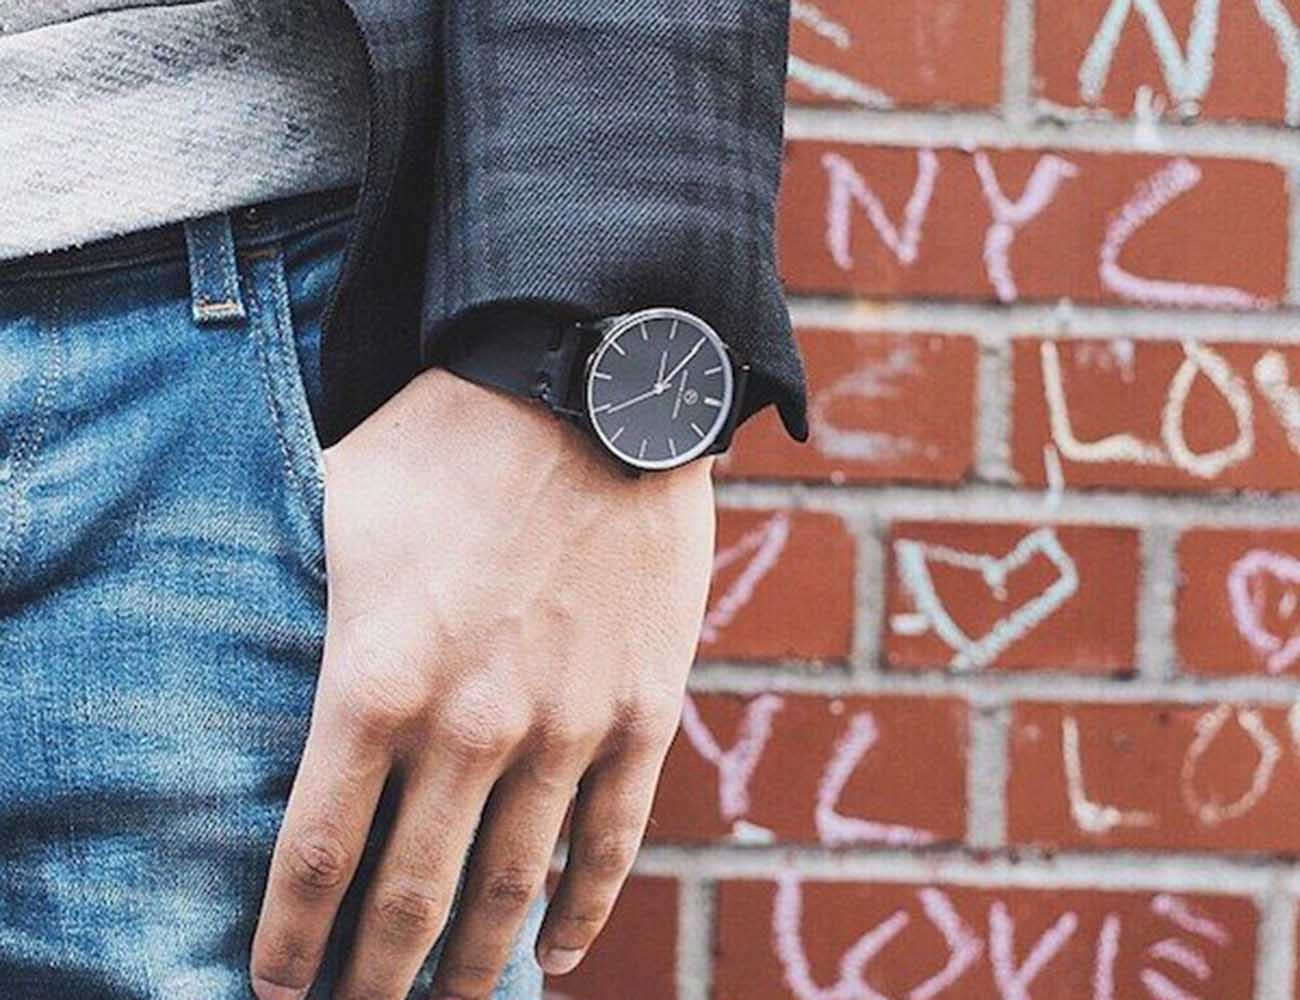 Eightynine Drk 014 Watch By Broome & Mercer